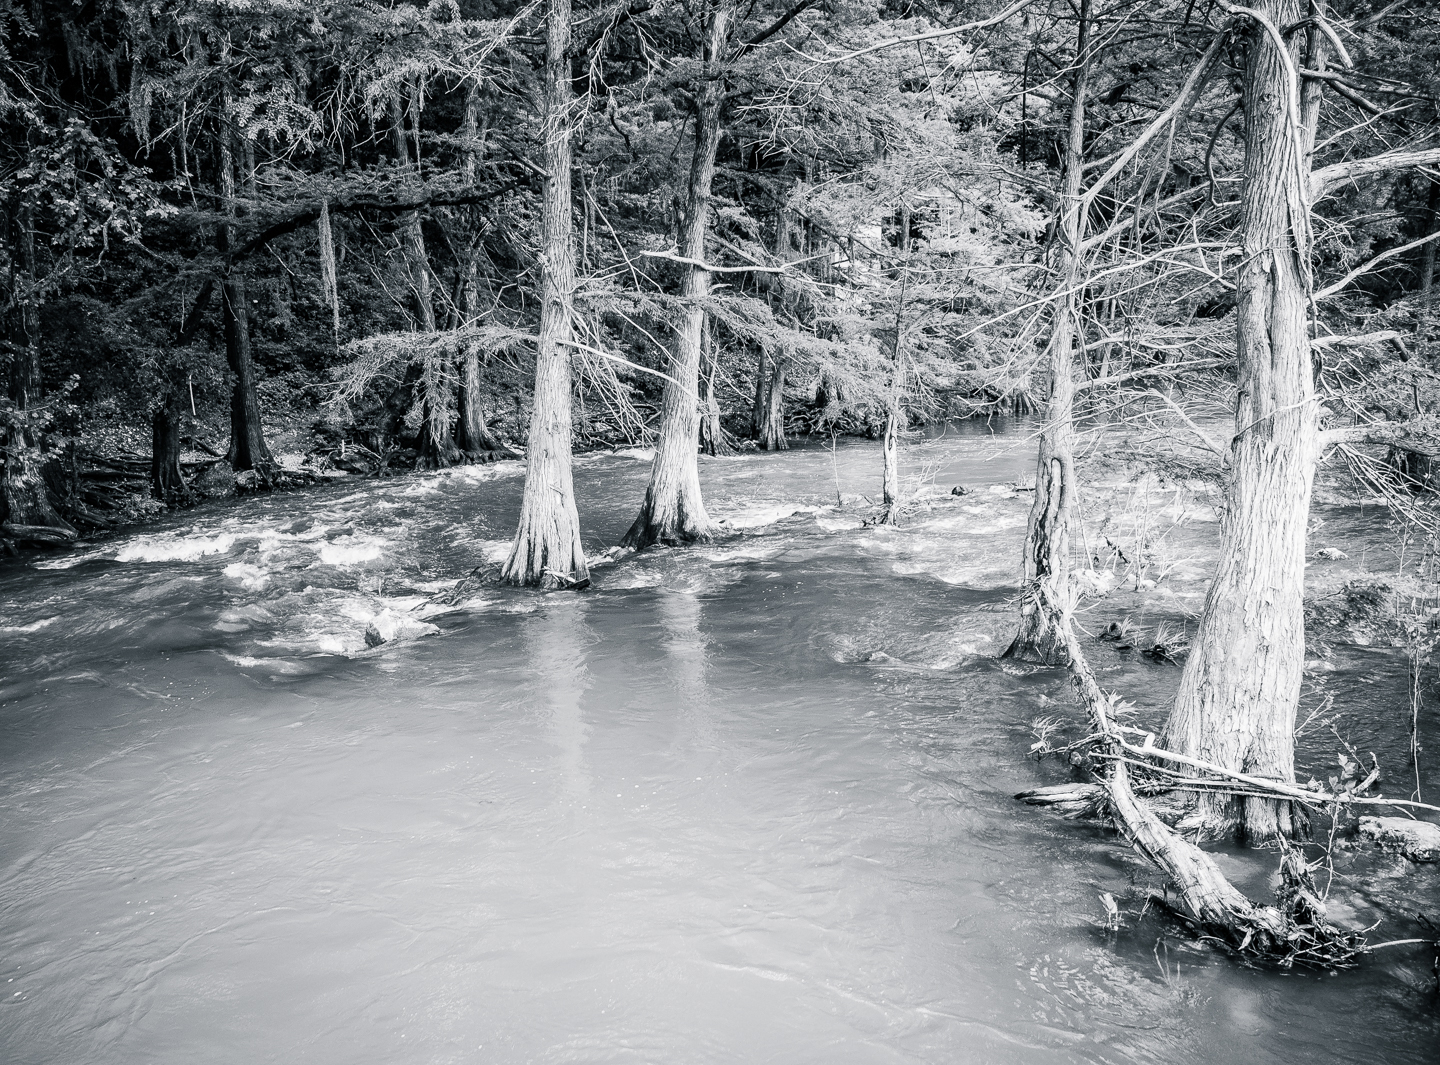 B&W - Guadalupe River Flooding - Mary Hulett